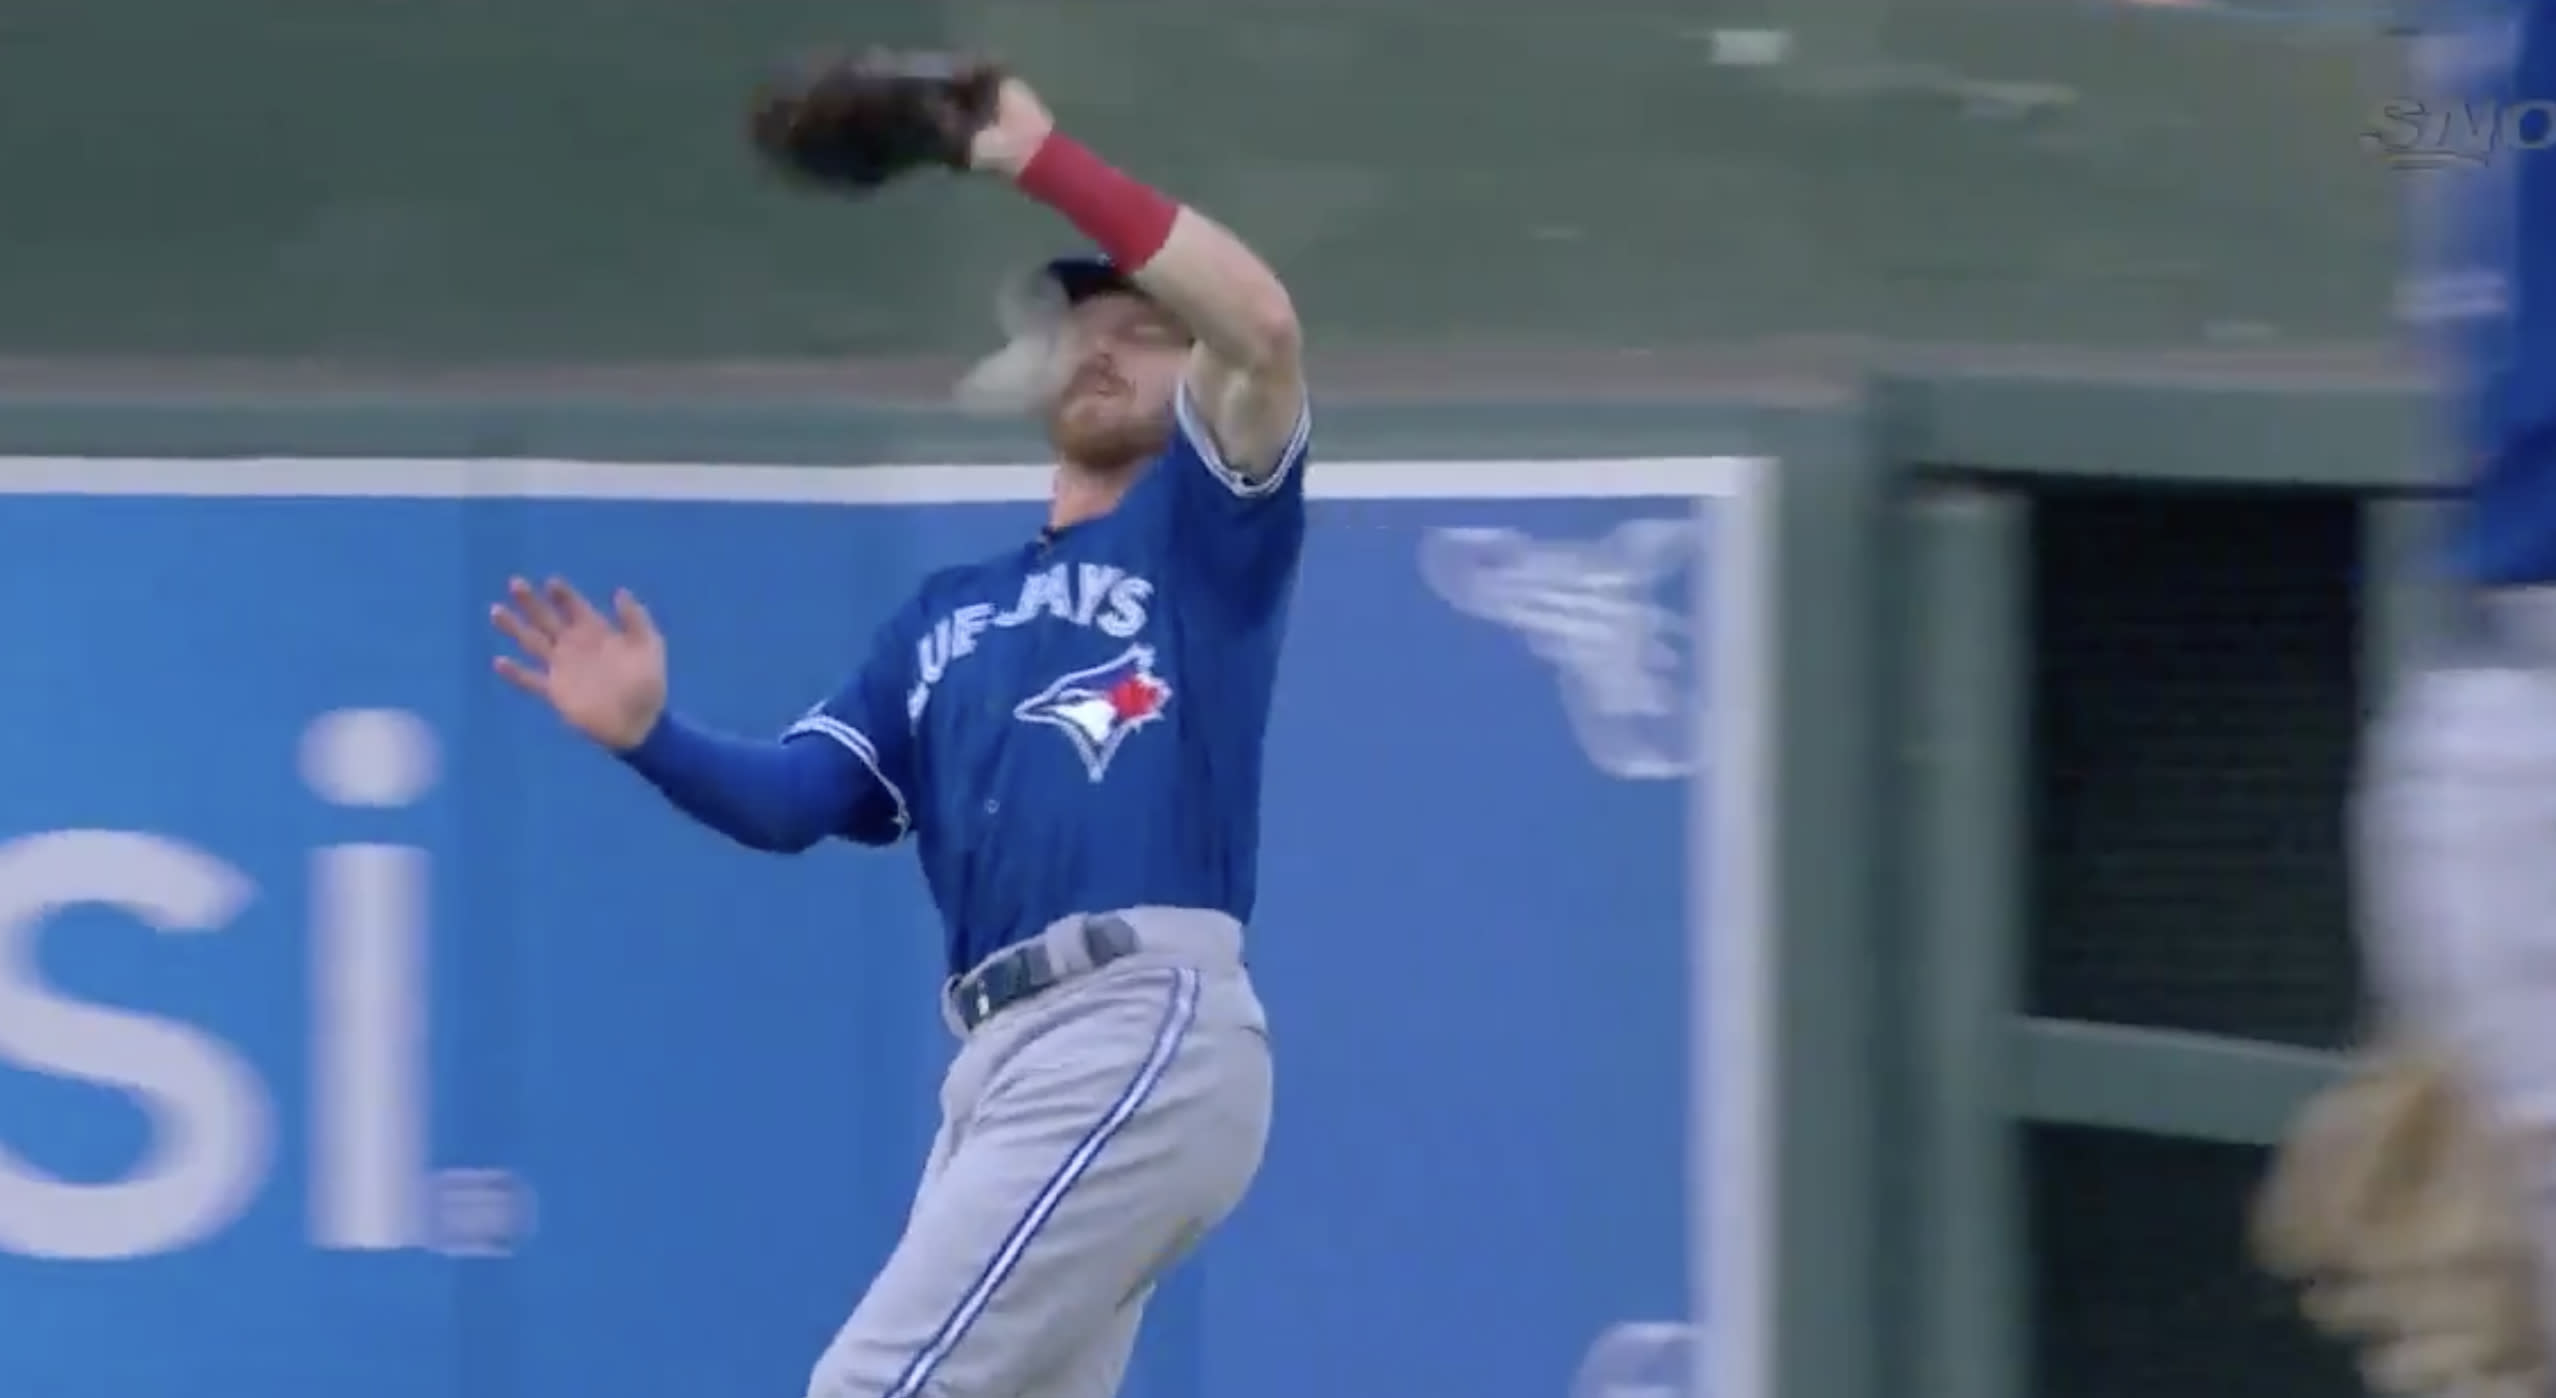 https://finance.yahoo.com/news/blue-jays-derek-fisher-leaves-game-after-taking-fly-ball-to-the-face-against-orioles-023725484.html